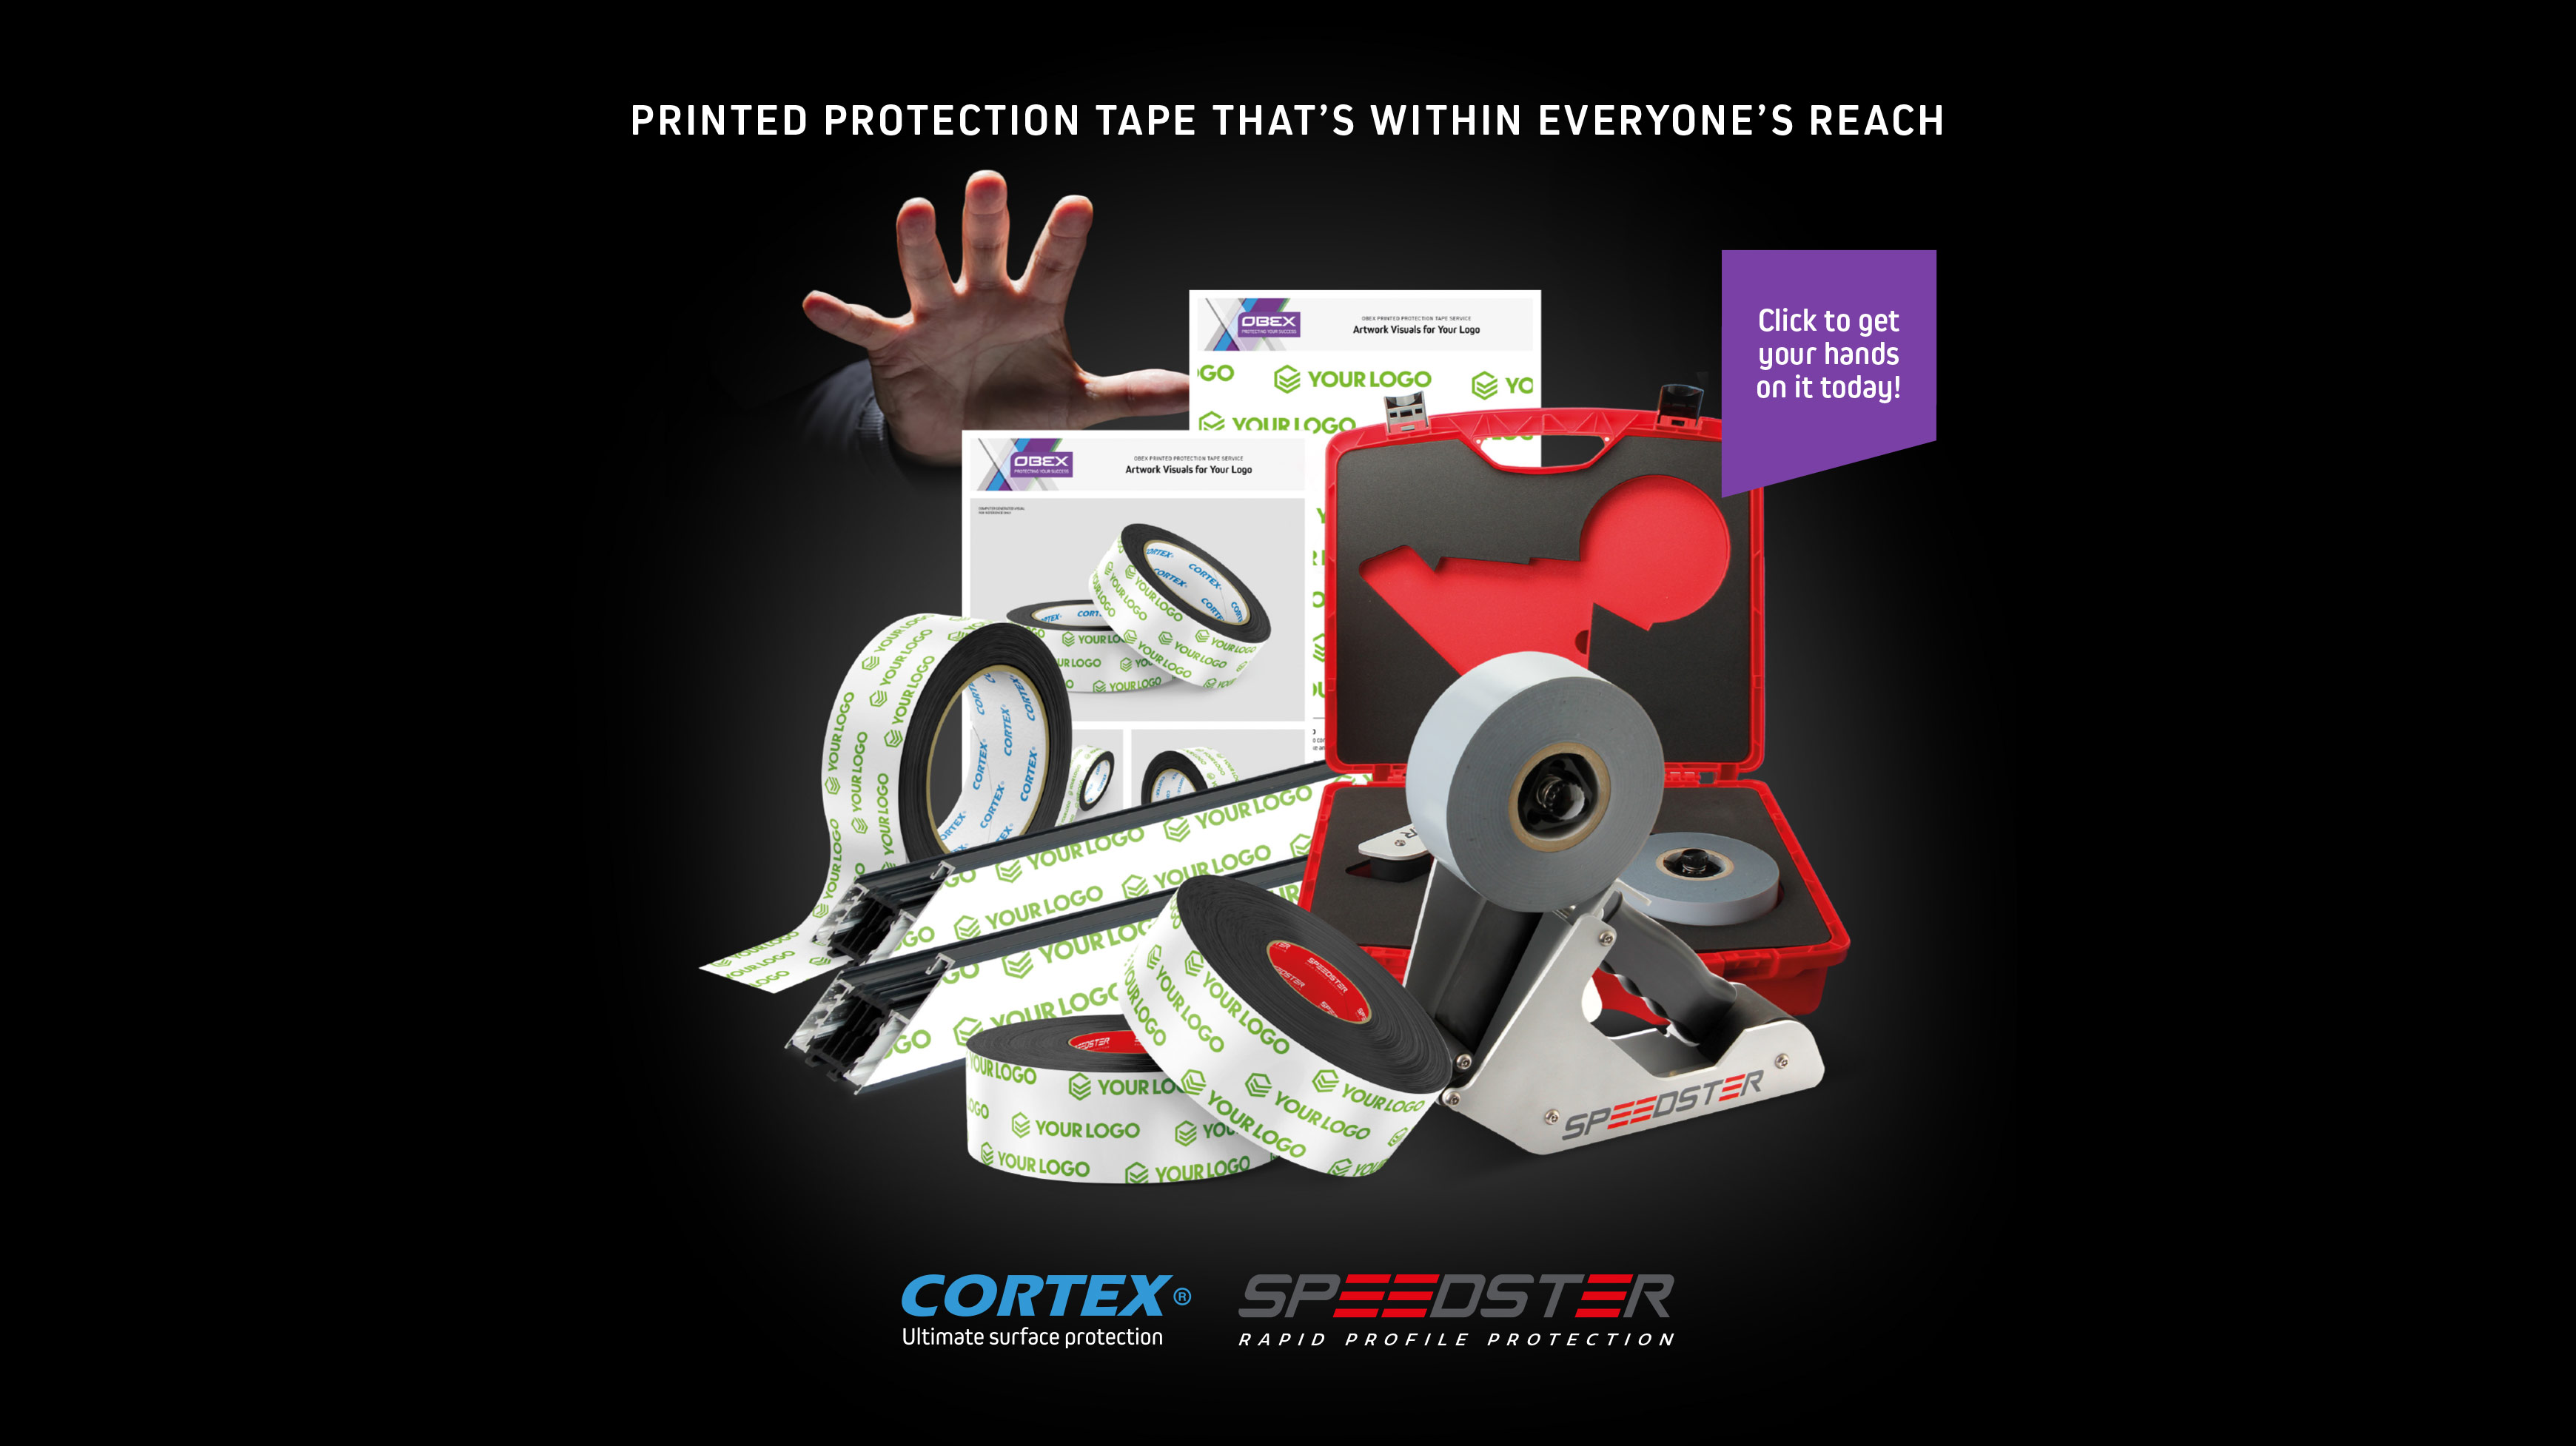 Printed protection tape that's within everyone's reach